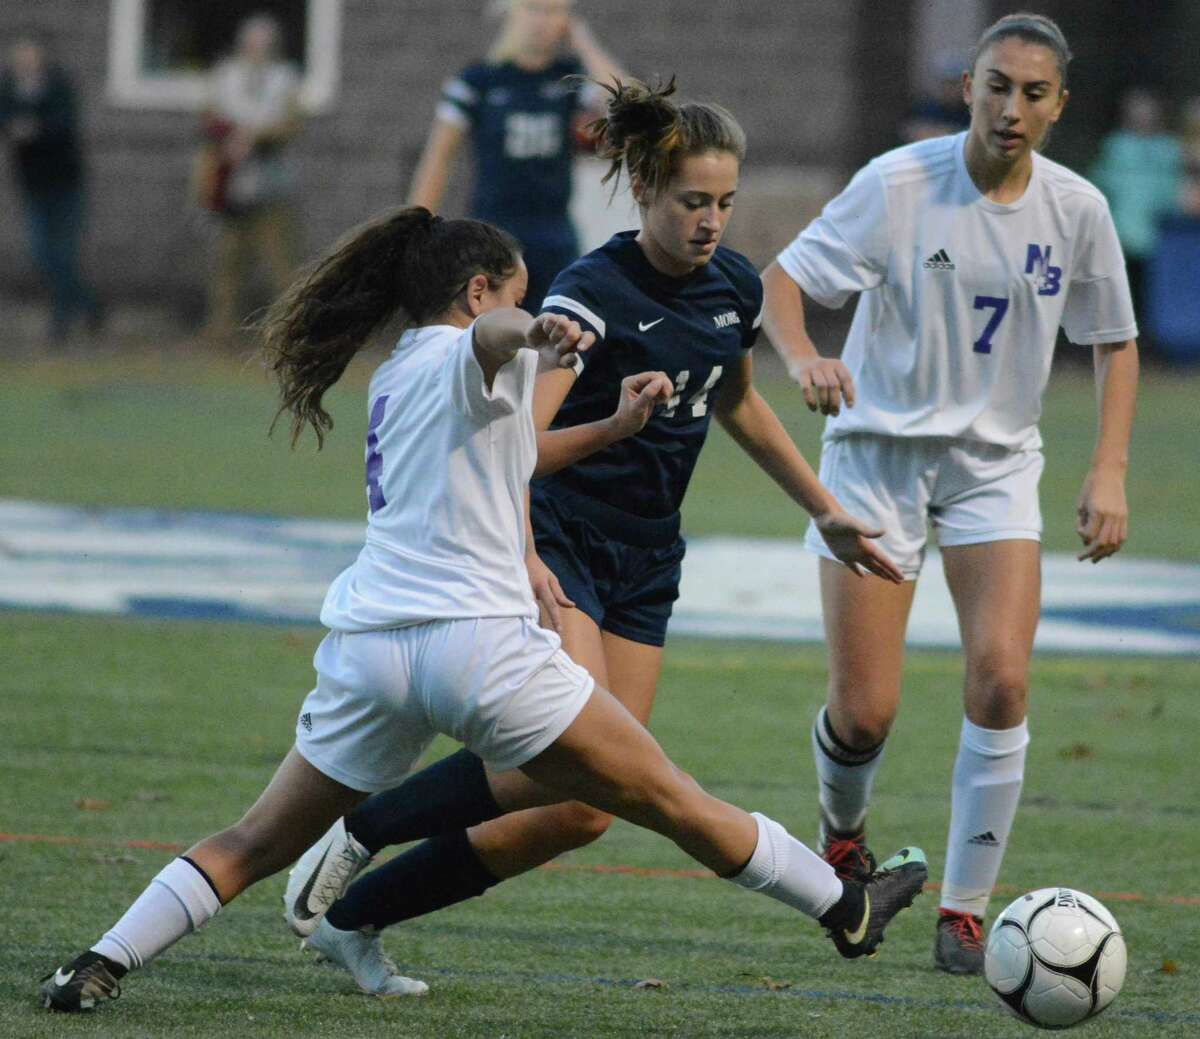 Morgan's Kylee Clifton (14) is defended by North Branford's Gabbie Sarmento (4) and Ana Pavic (7) during a Class M girls soccer playoff game on Wednesday, Nov. 7, 2018 in Clinton, Conn. Morgan won 2-1.